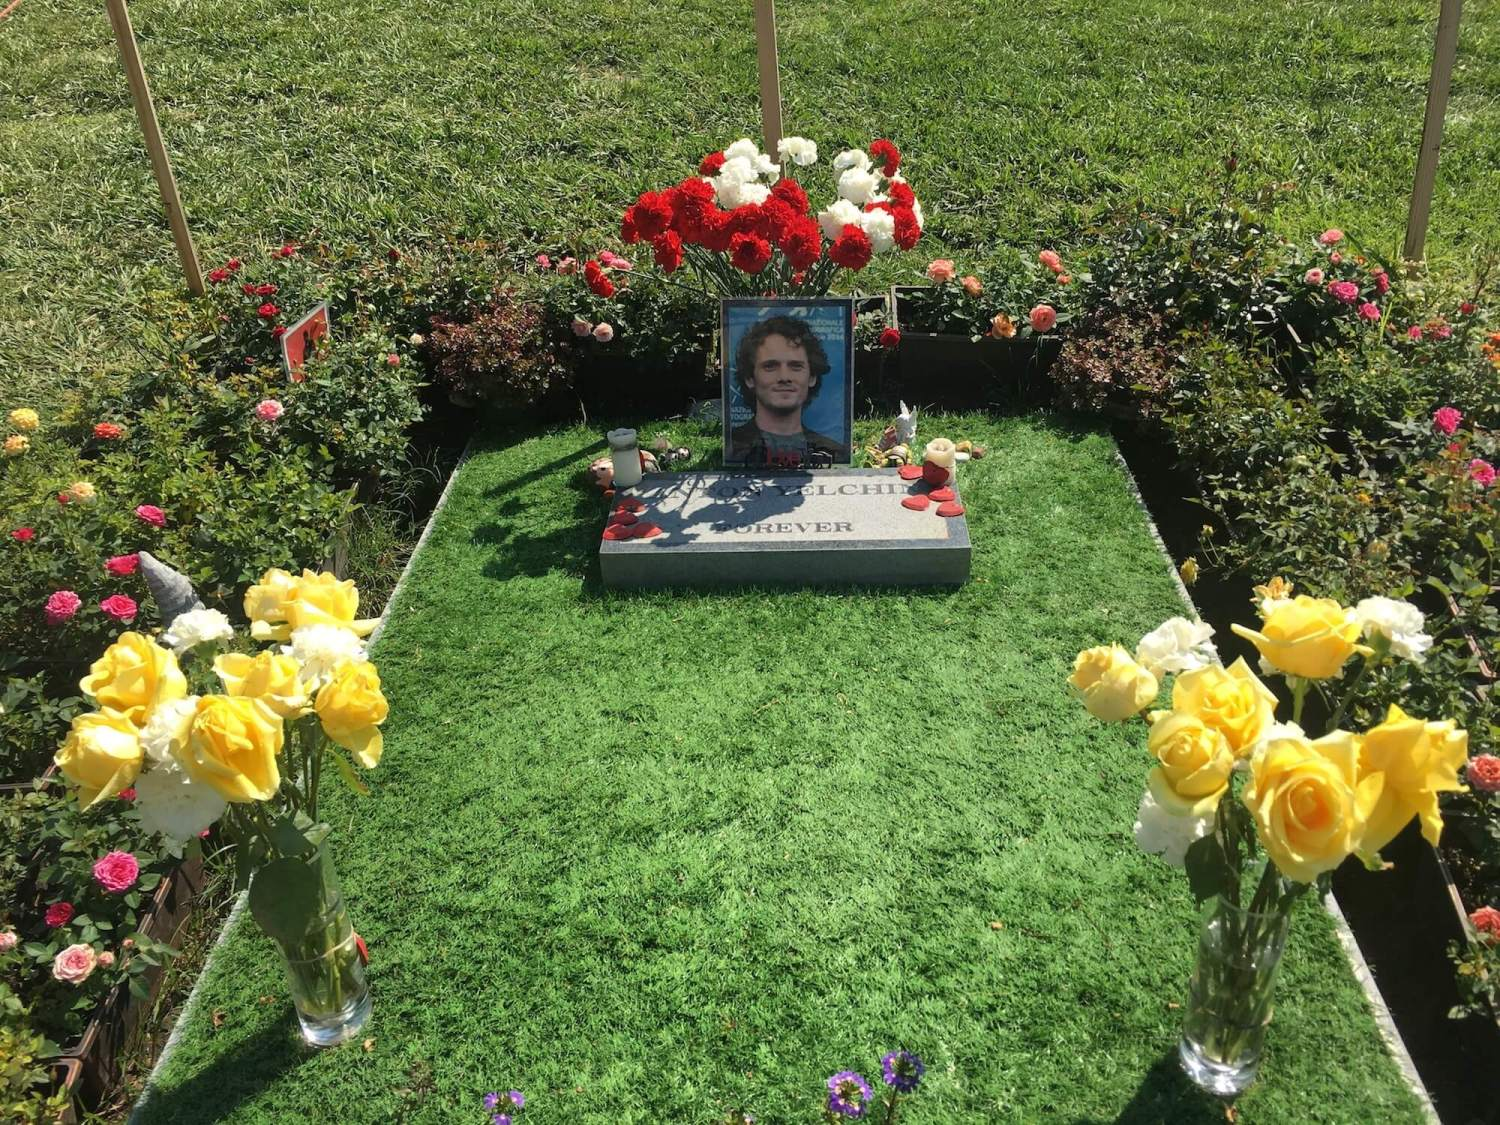 Anton yelchin final resting place, hollywood forever cemetery, Anton yelchin temporary grave